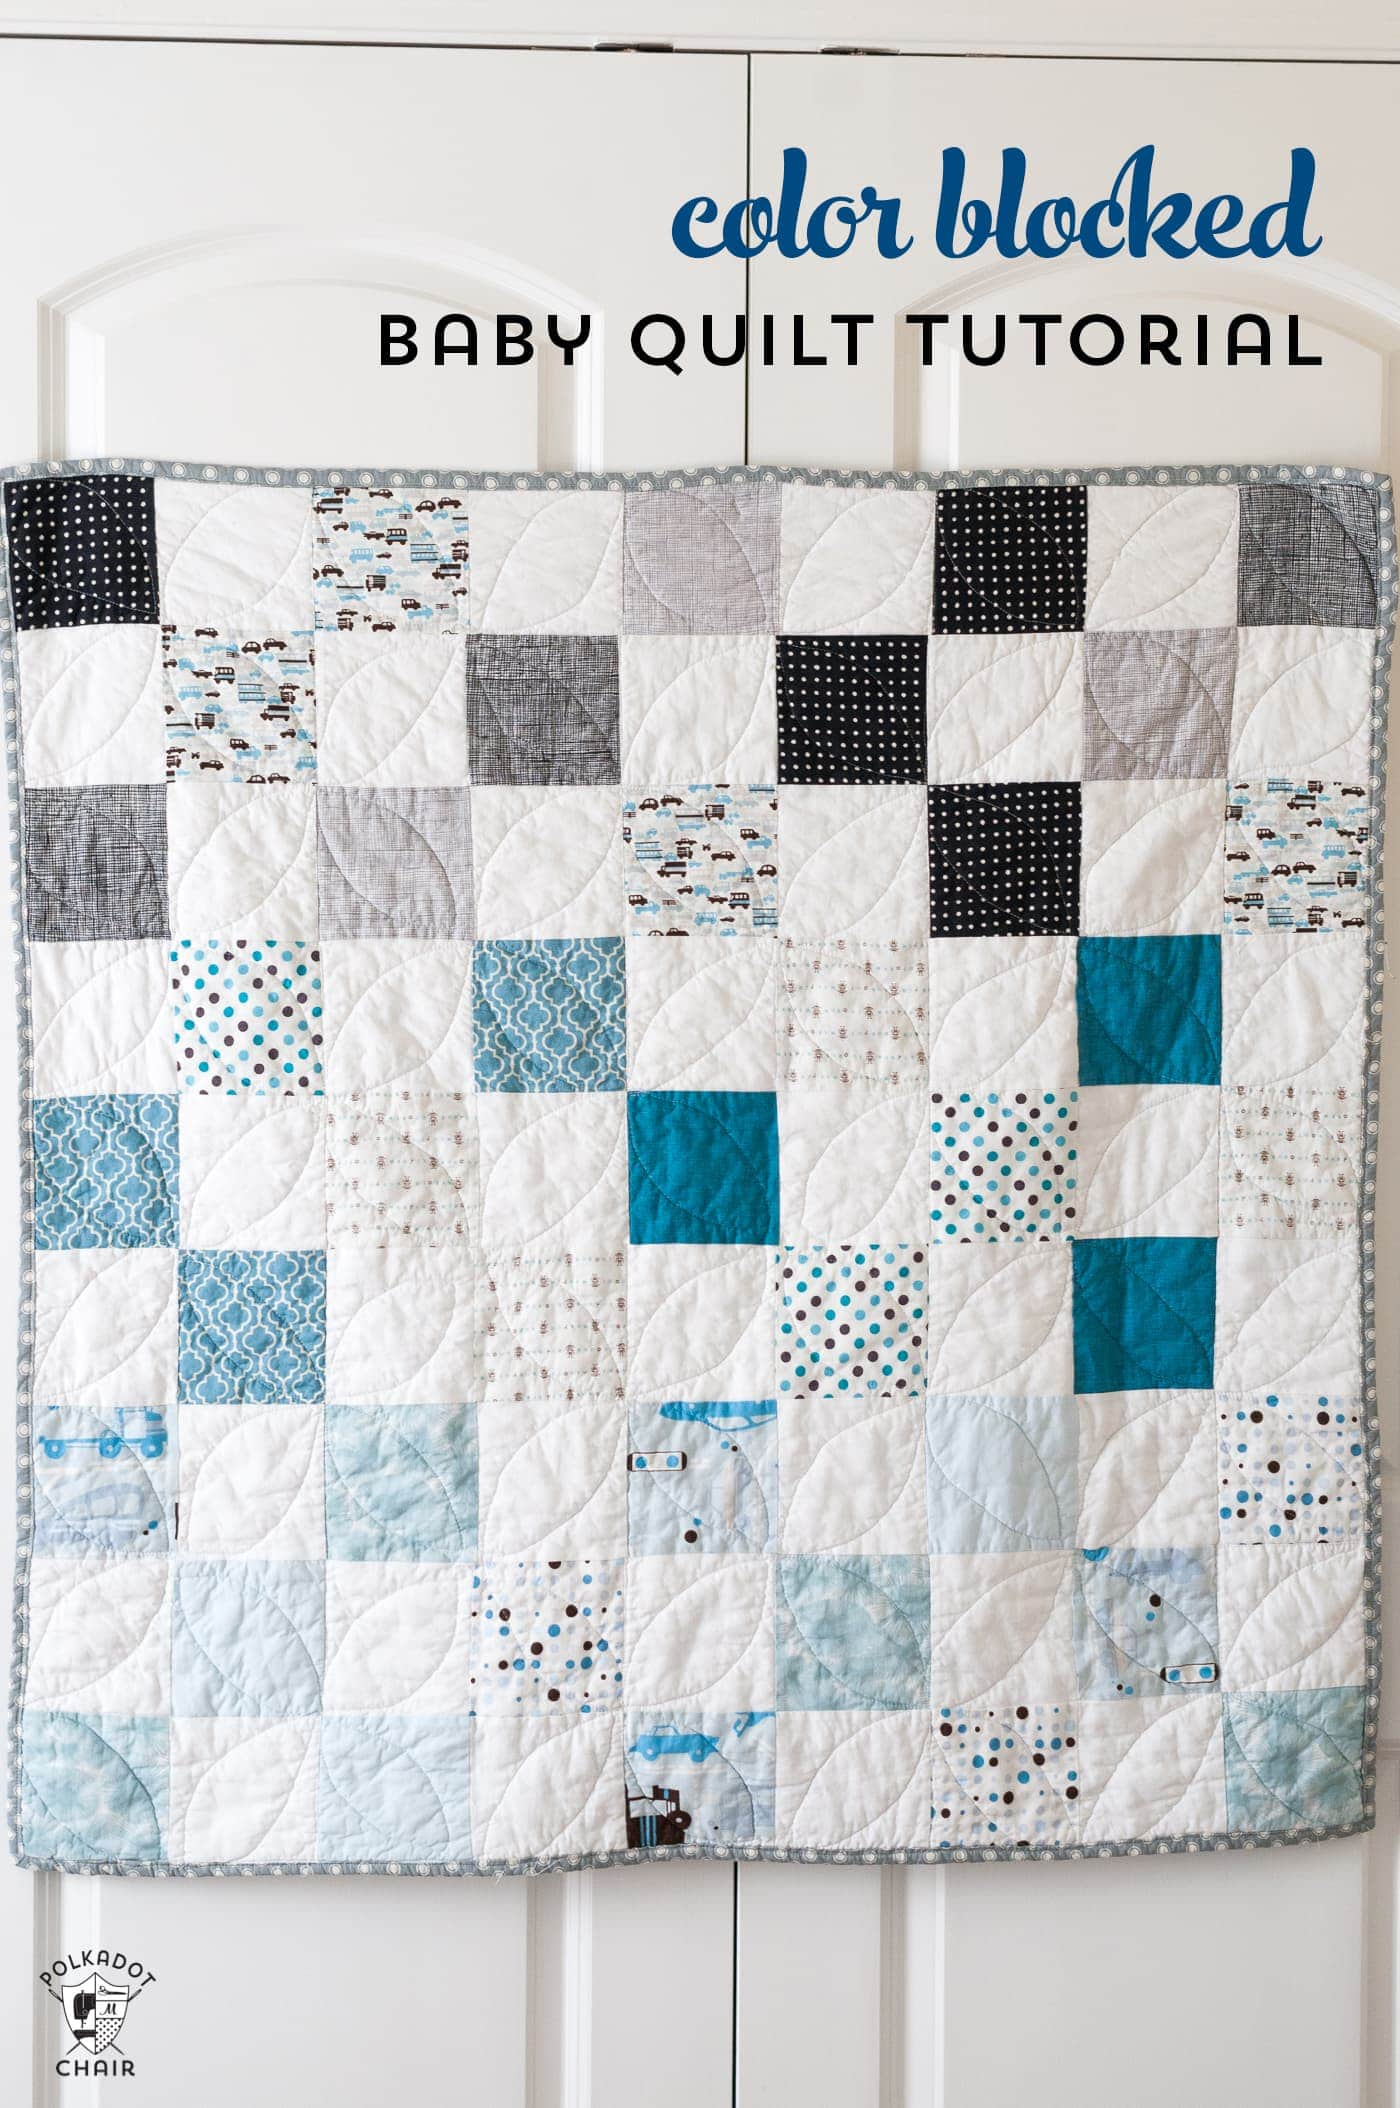 Baby Quilt Patterns.Color Blocked Patchwork Baby Quilt Tutorial A Free Quilt Pattern